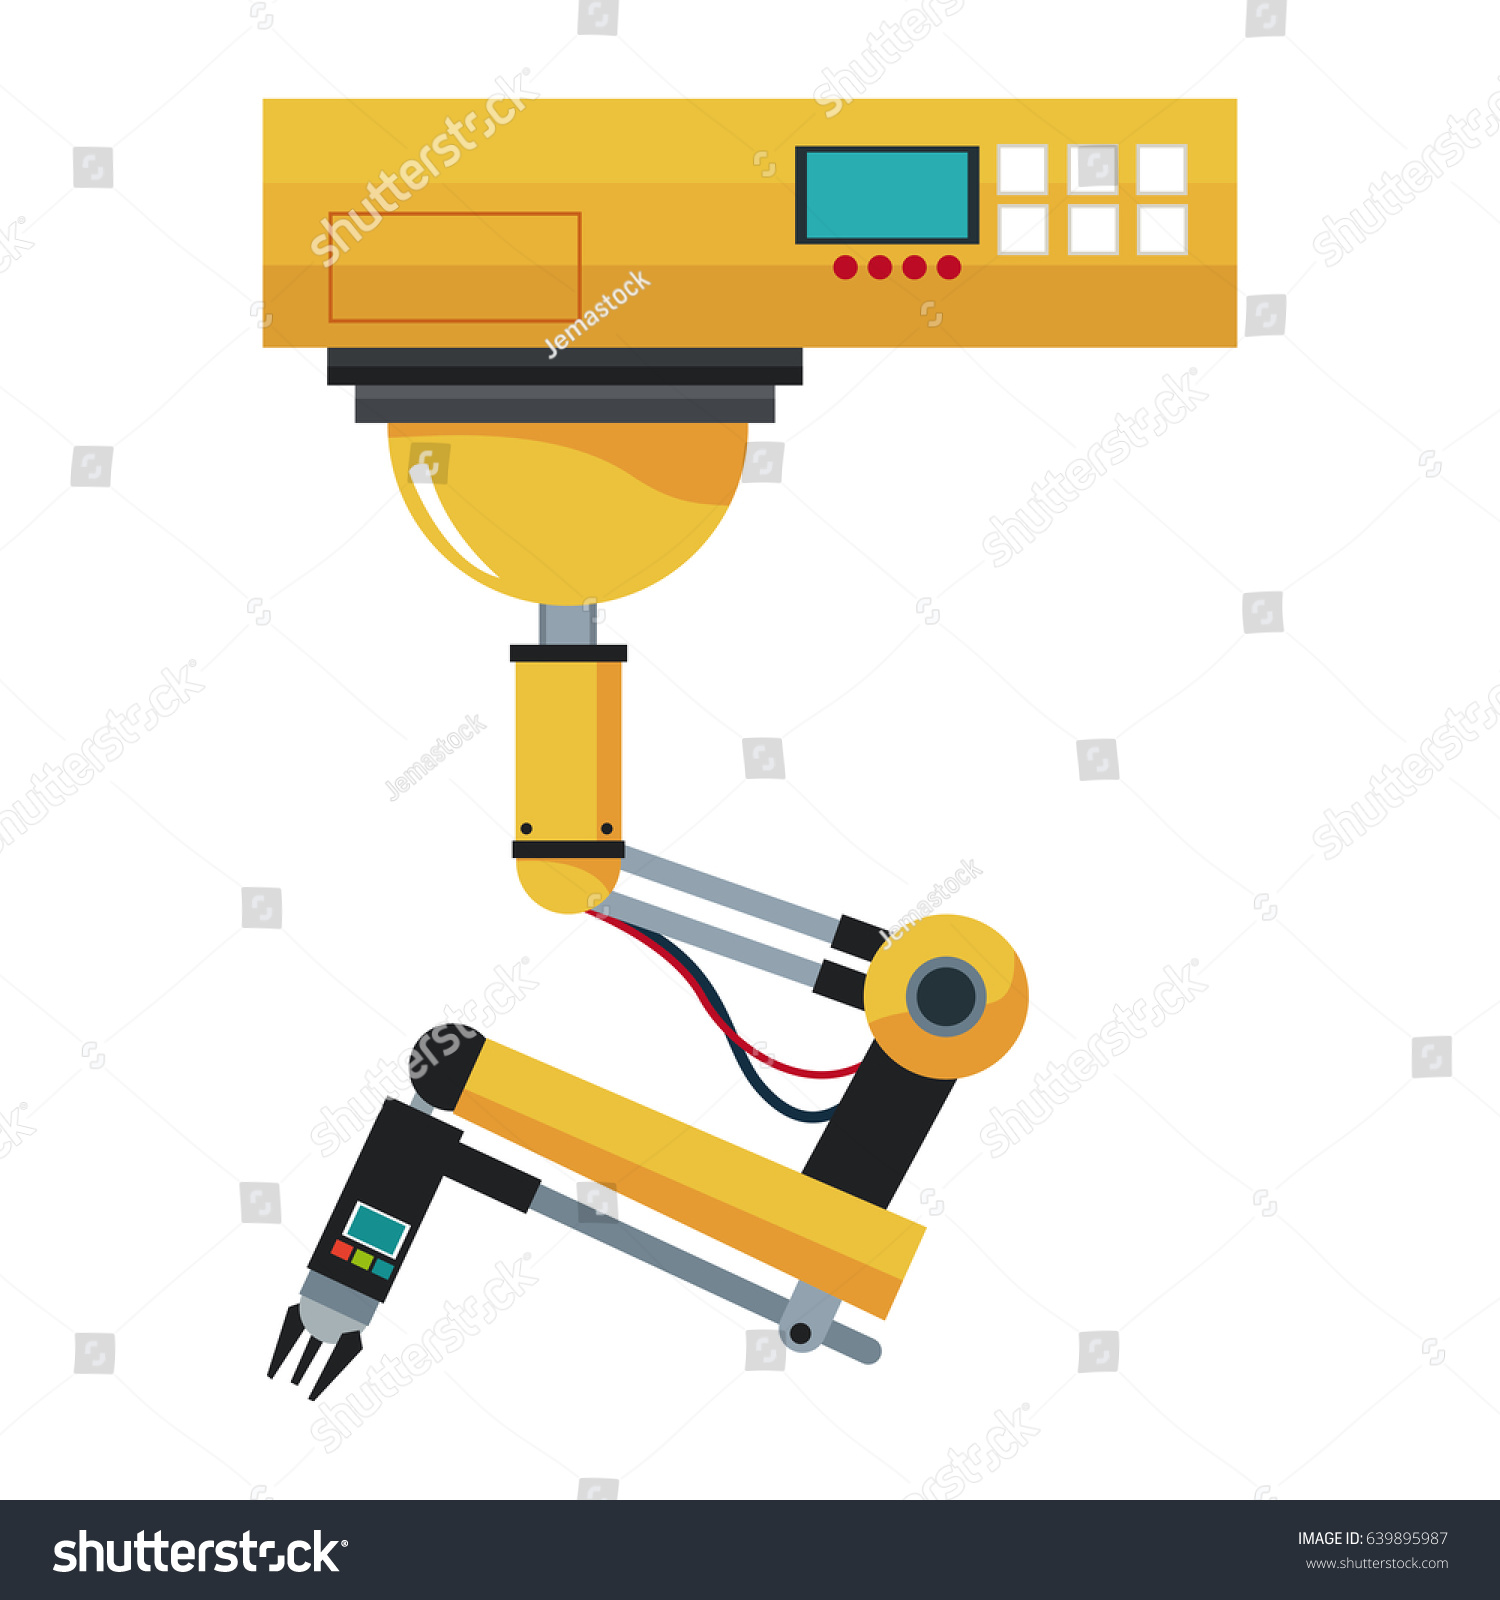 Industrial Robotic Arm Control System Button Stock Vector (Royalty